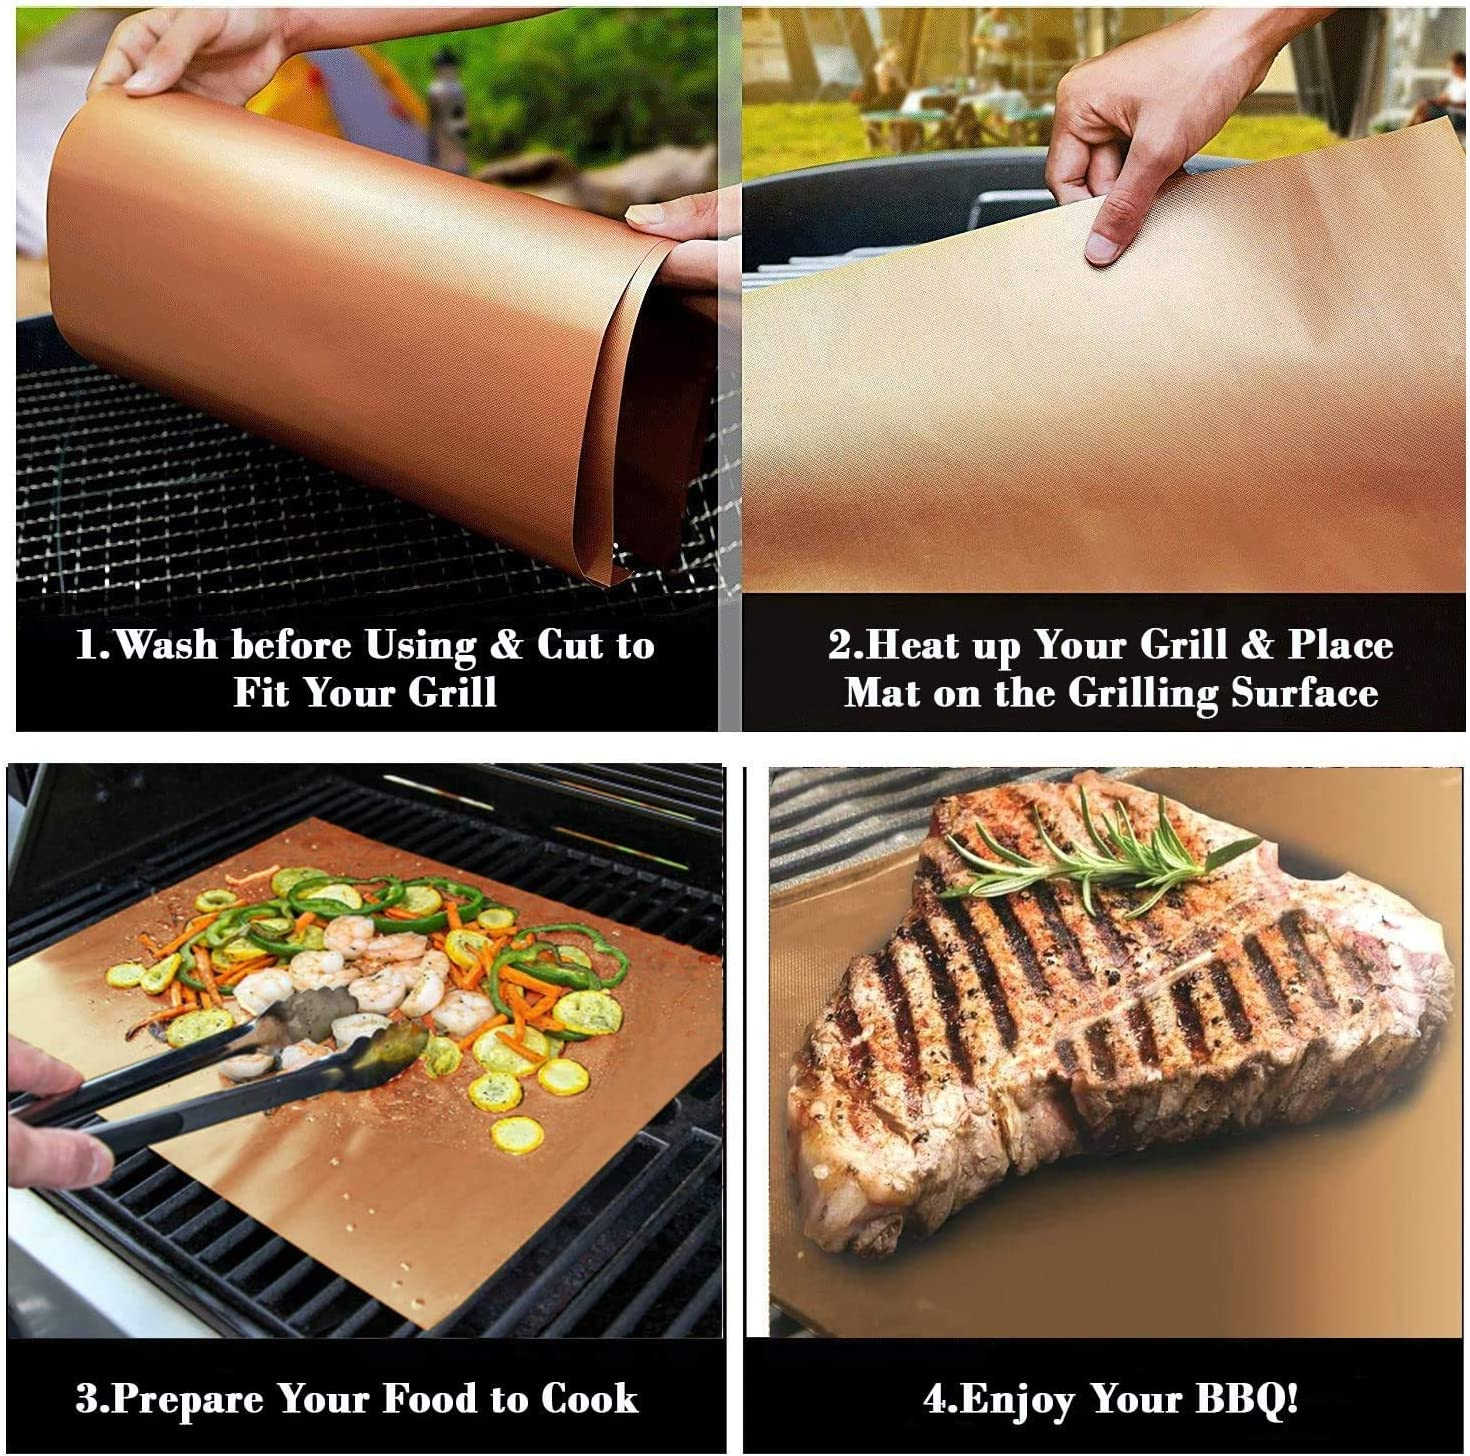 5Pcs Grill Mat Copper BBQ Grill Mat Baking Mat Set Non-Stick Reusable Copper Cooking Sheets for Gas Grills BBQ Cooking Baking Charcoal Outdoor Grill with 2 Silicone BBQ Brushes, 15.7*12.9 inch